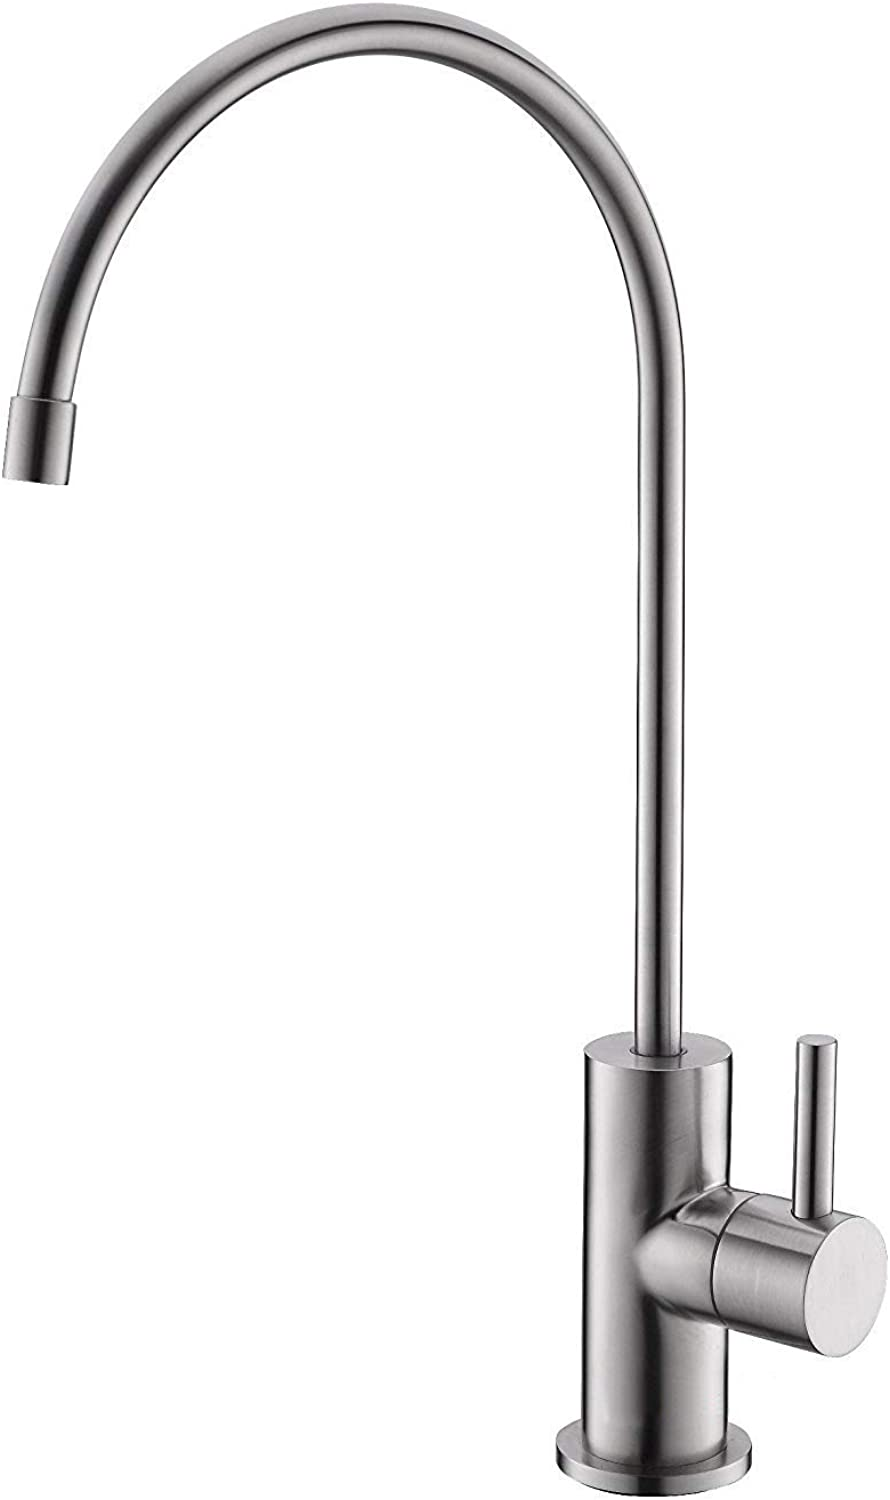 Tap Stainless Steel Reverse Osmosis, Drinking Water, Water Purifier faucet,fit for 1 4 &3 8  tubing,Brushed Nickel